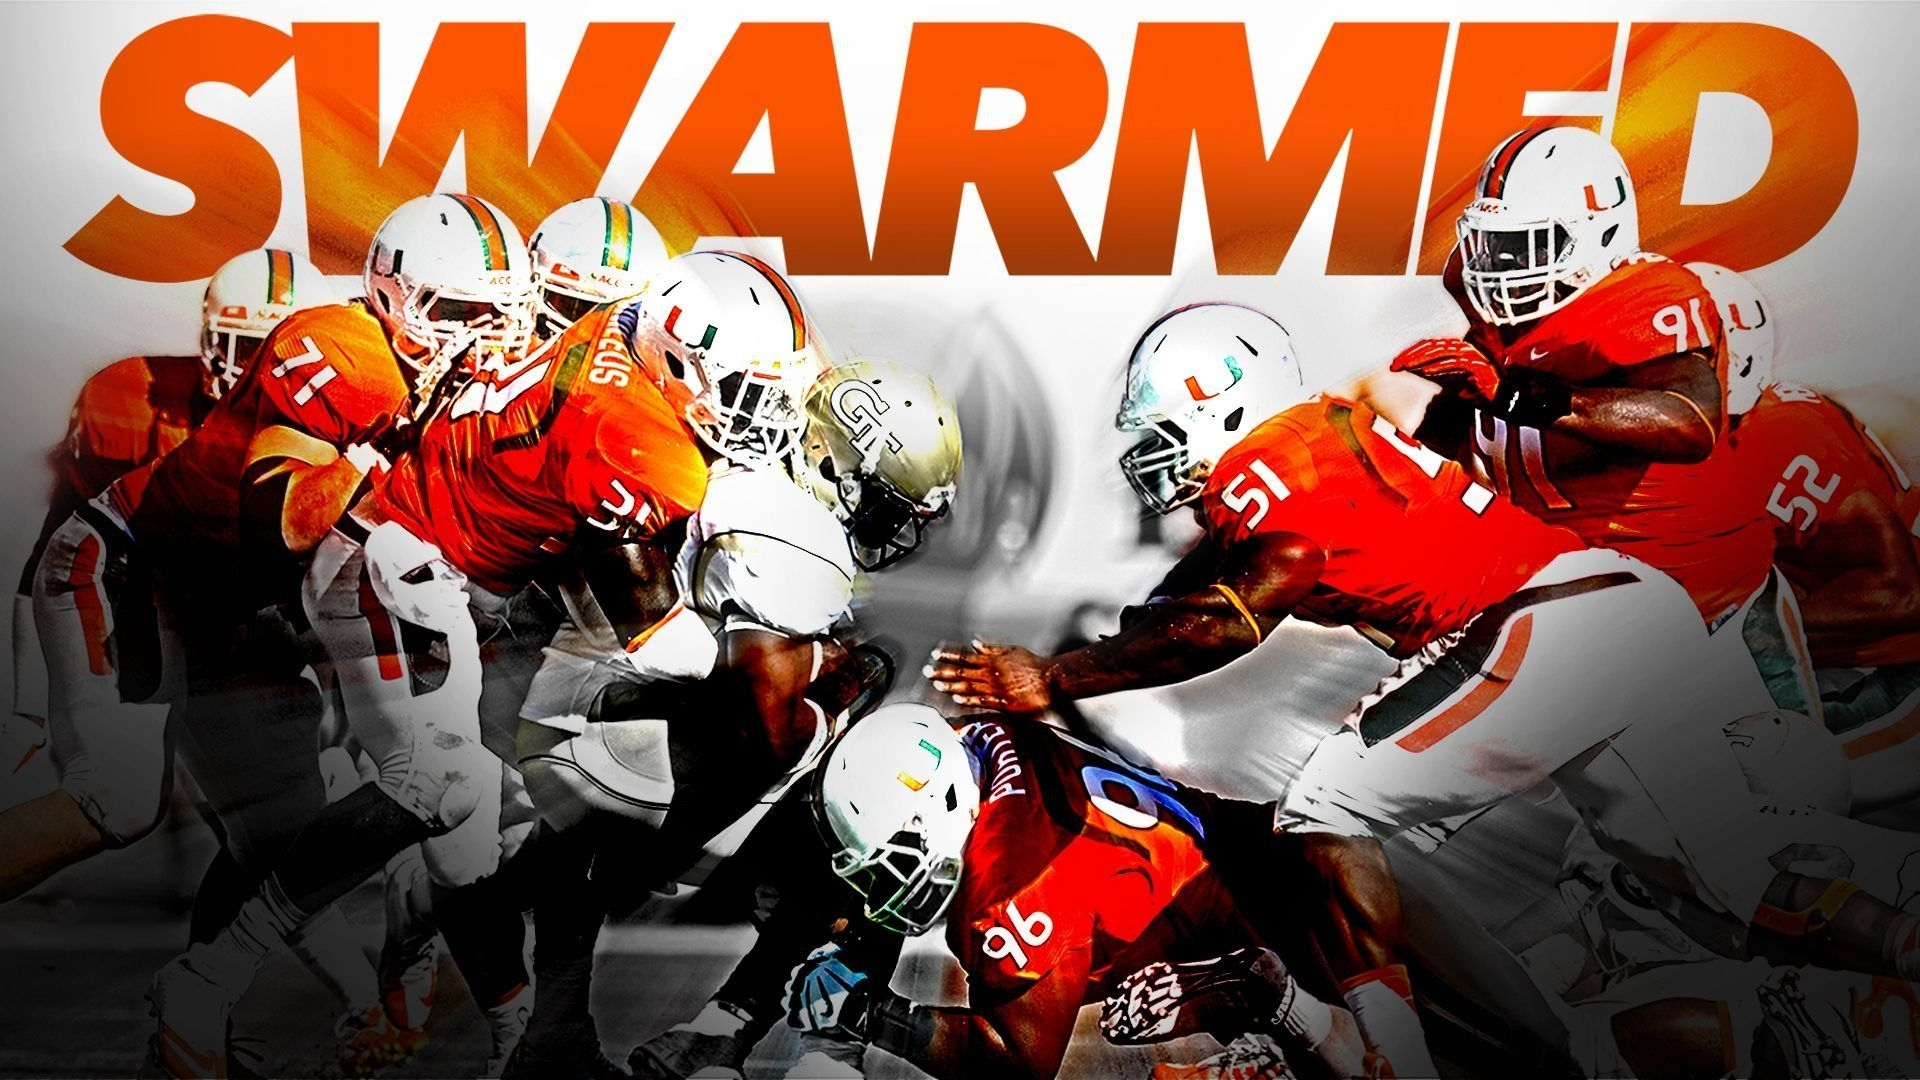 university of miami football wallpapers group (50+)